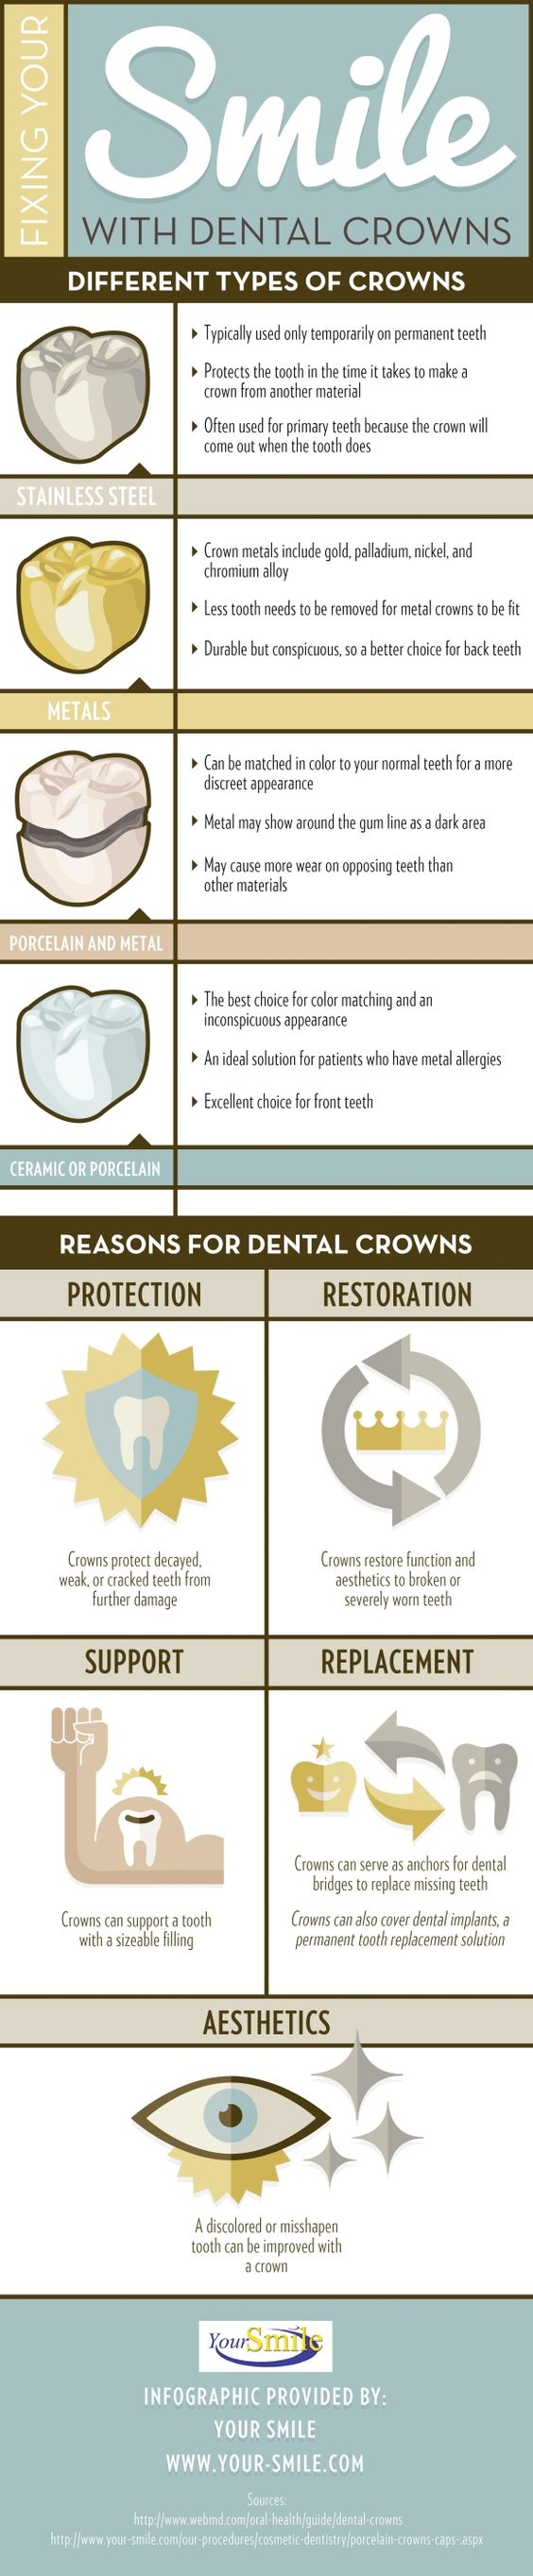 Why do patients get dental crowns? These devices can be used to protect, restore, support, replace, and improve the appearance of a variety of smiles! Click over to this Bel Air family dentistry infographic to get more details about dental crown functions.